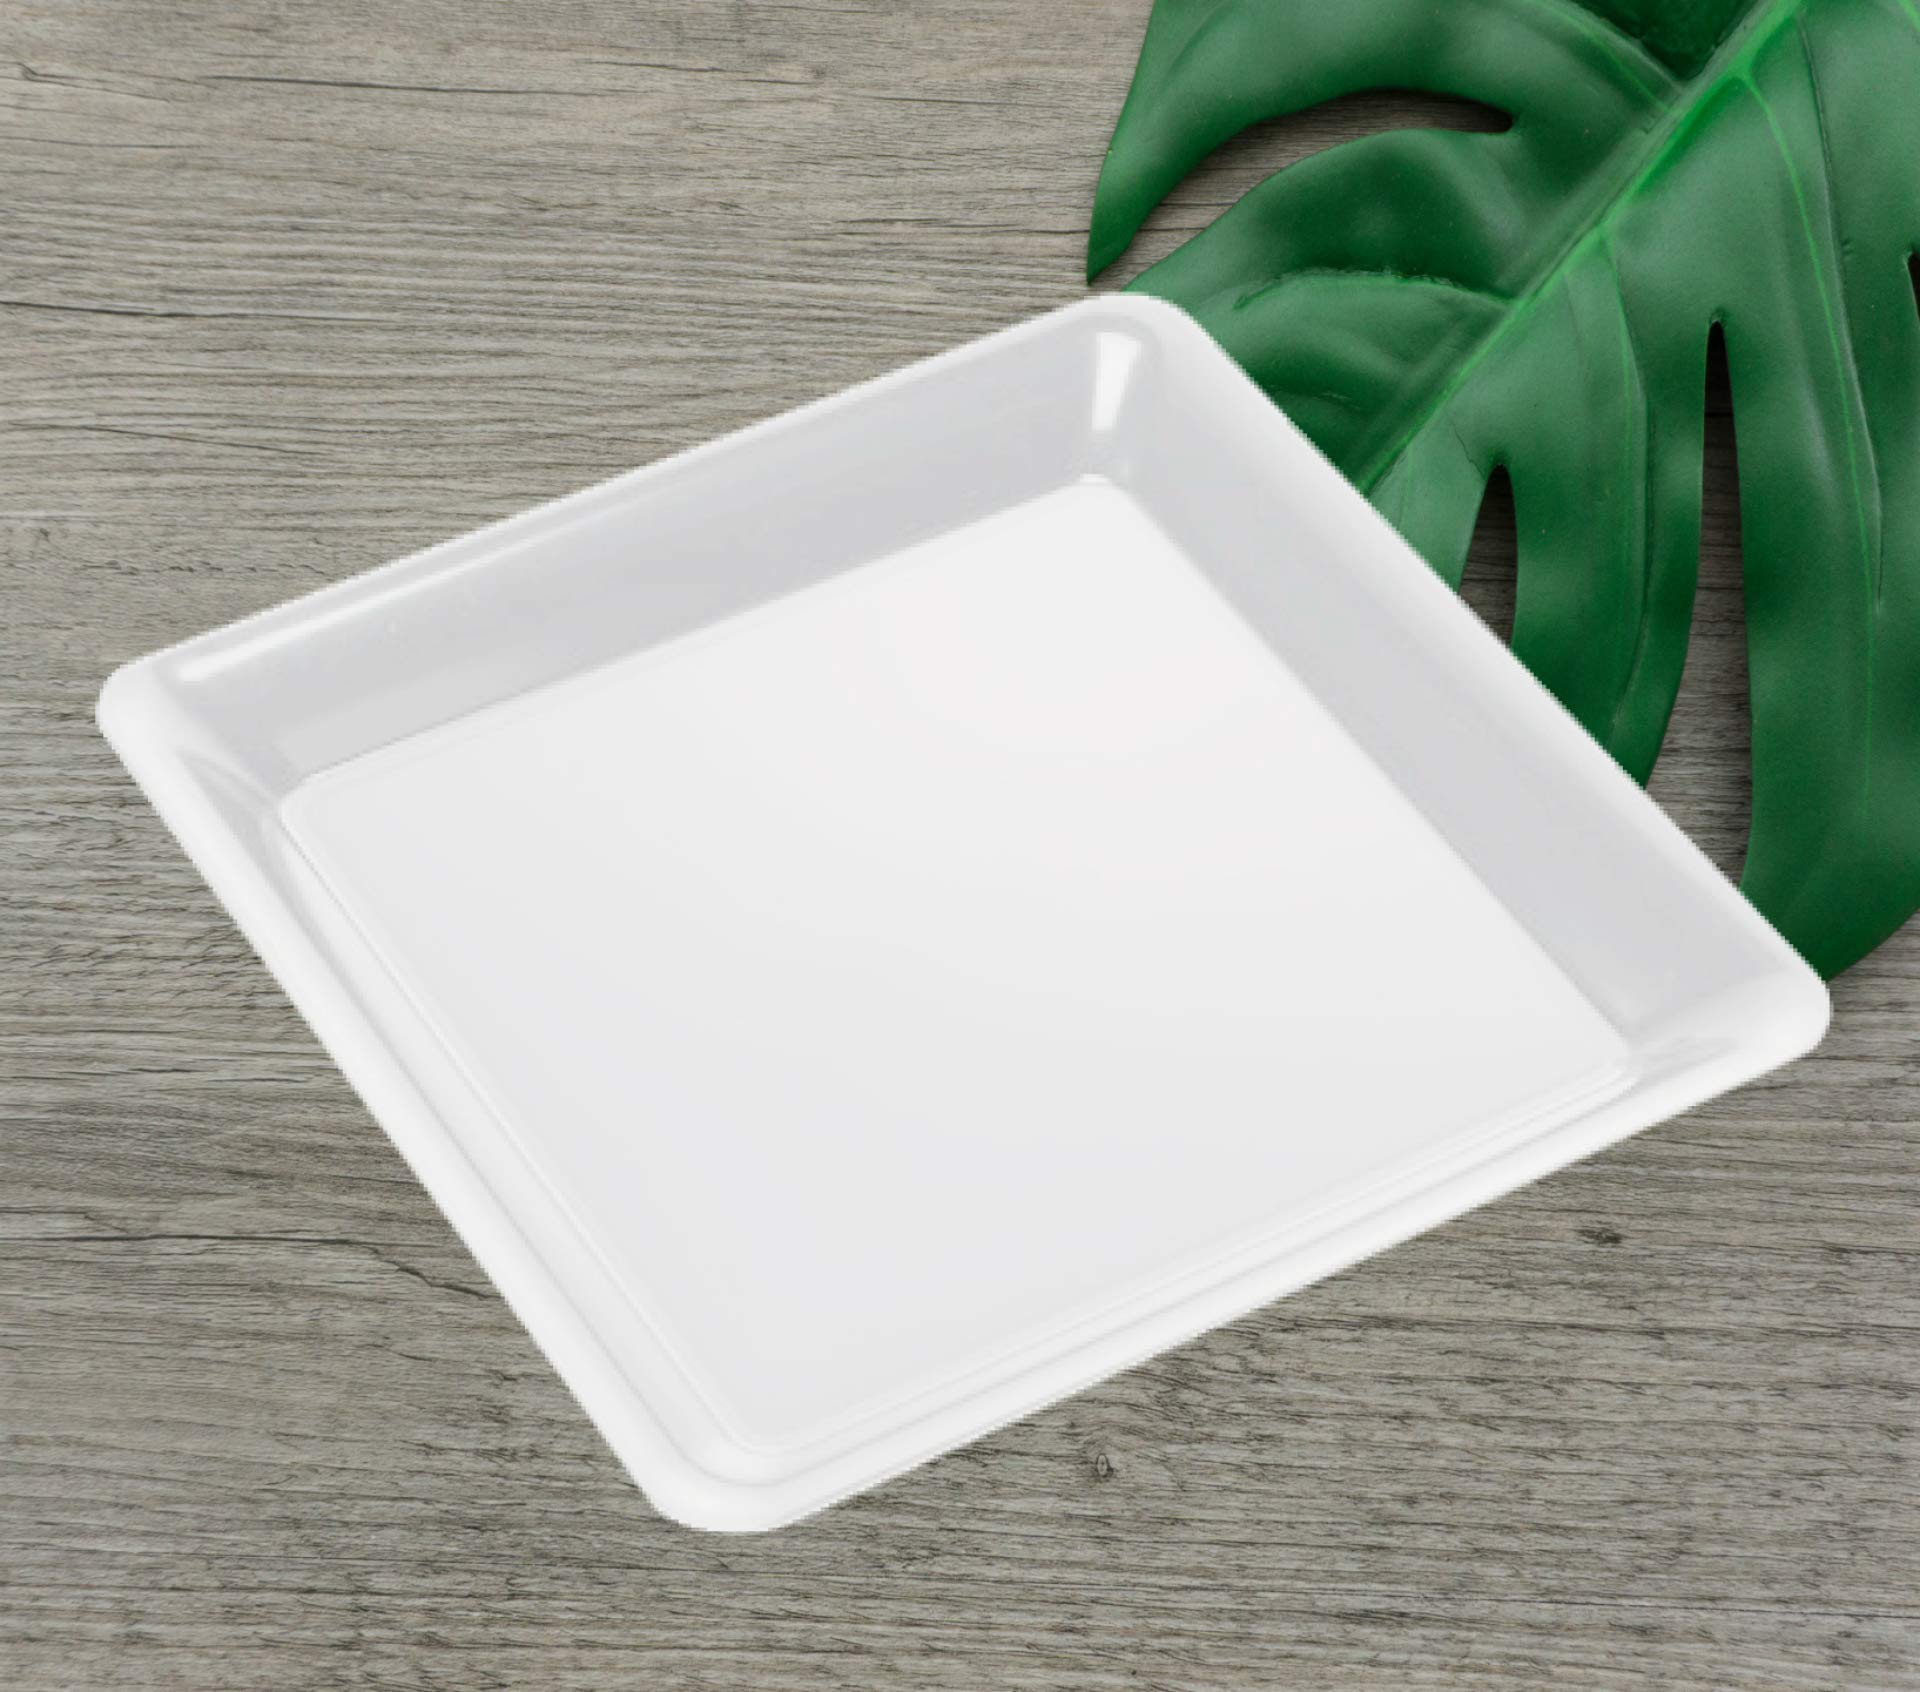 4 12'' White Square Plastic Trays Heavy Duty Plastic Serving Tray 12'' x 12'' Unbreakable Serving Platters Food Tray Decorative Serving Trays Wedding Platter Party Trays Disposable Serving Party Platters